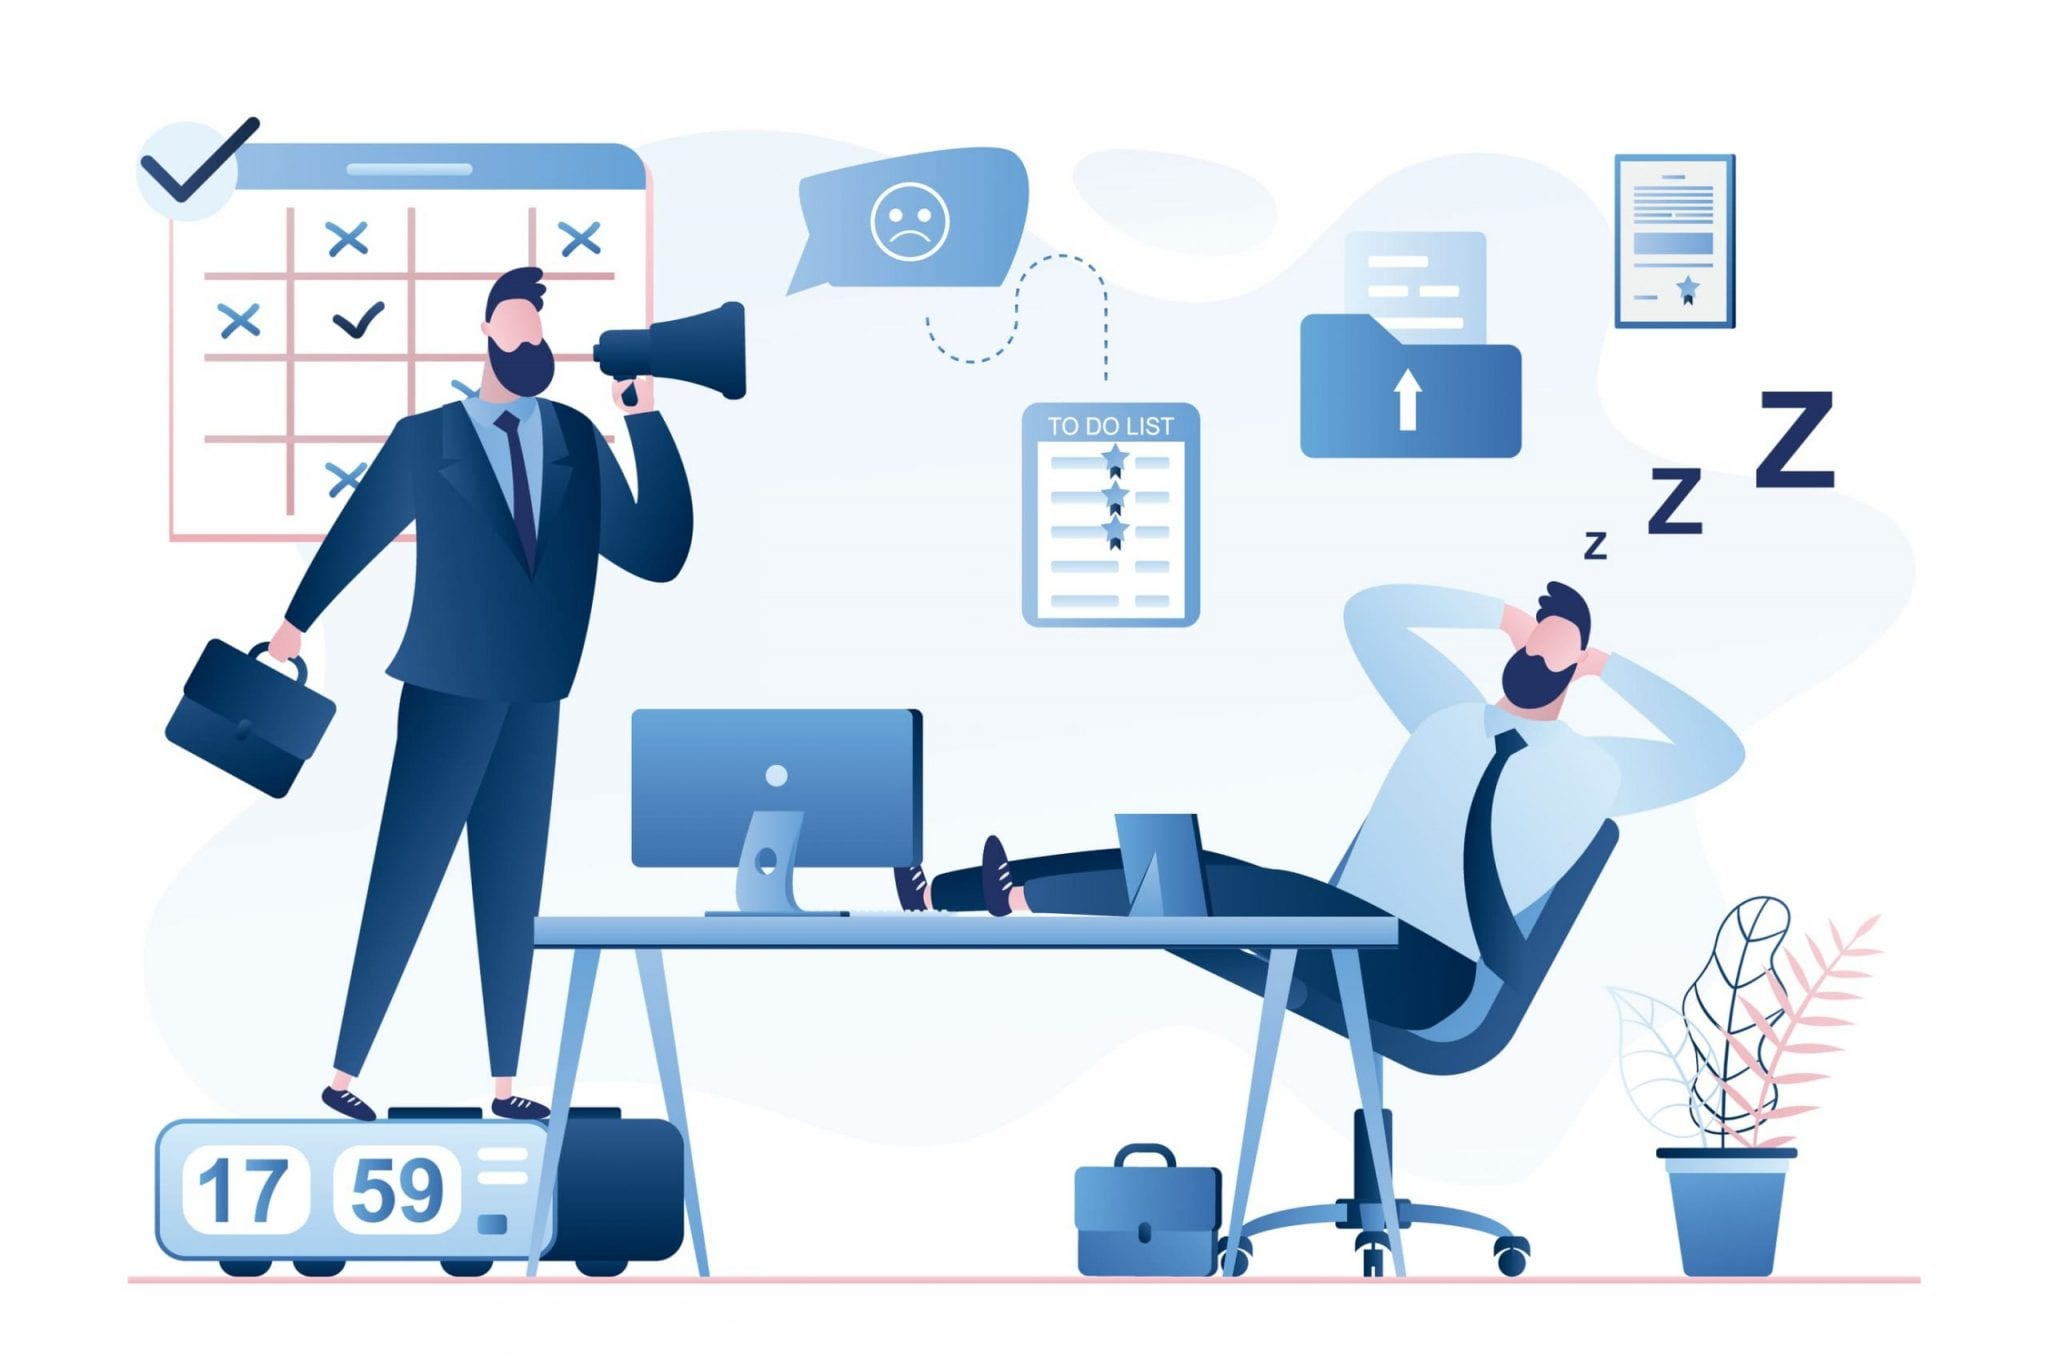 Boss Businessman With Megaphone and Office Worker Sleeps in the Workplace. Deadline and Time Management Concept Illustration